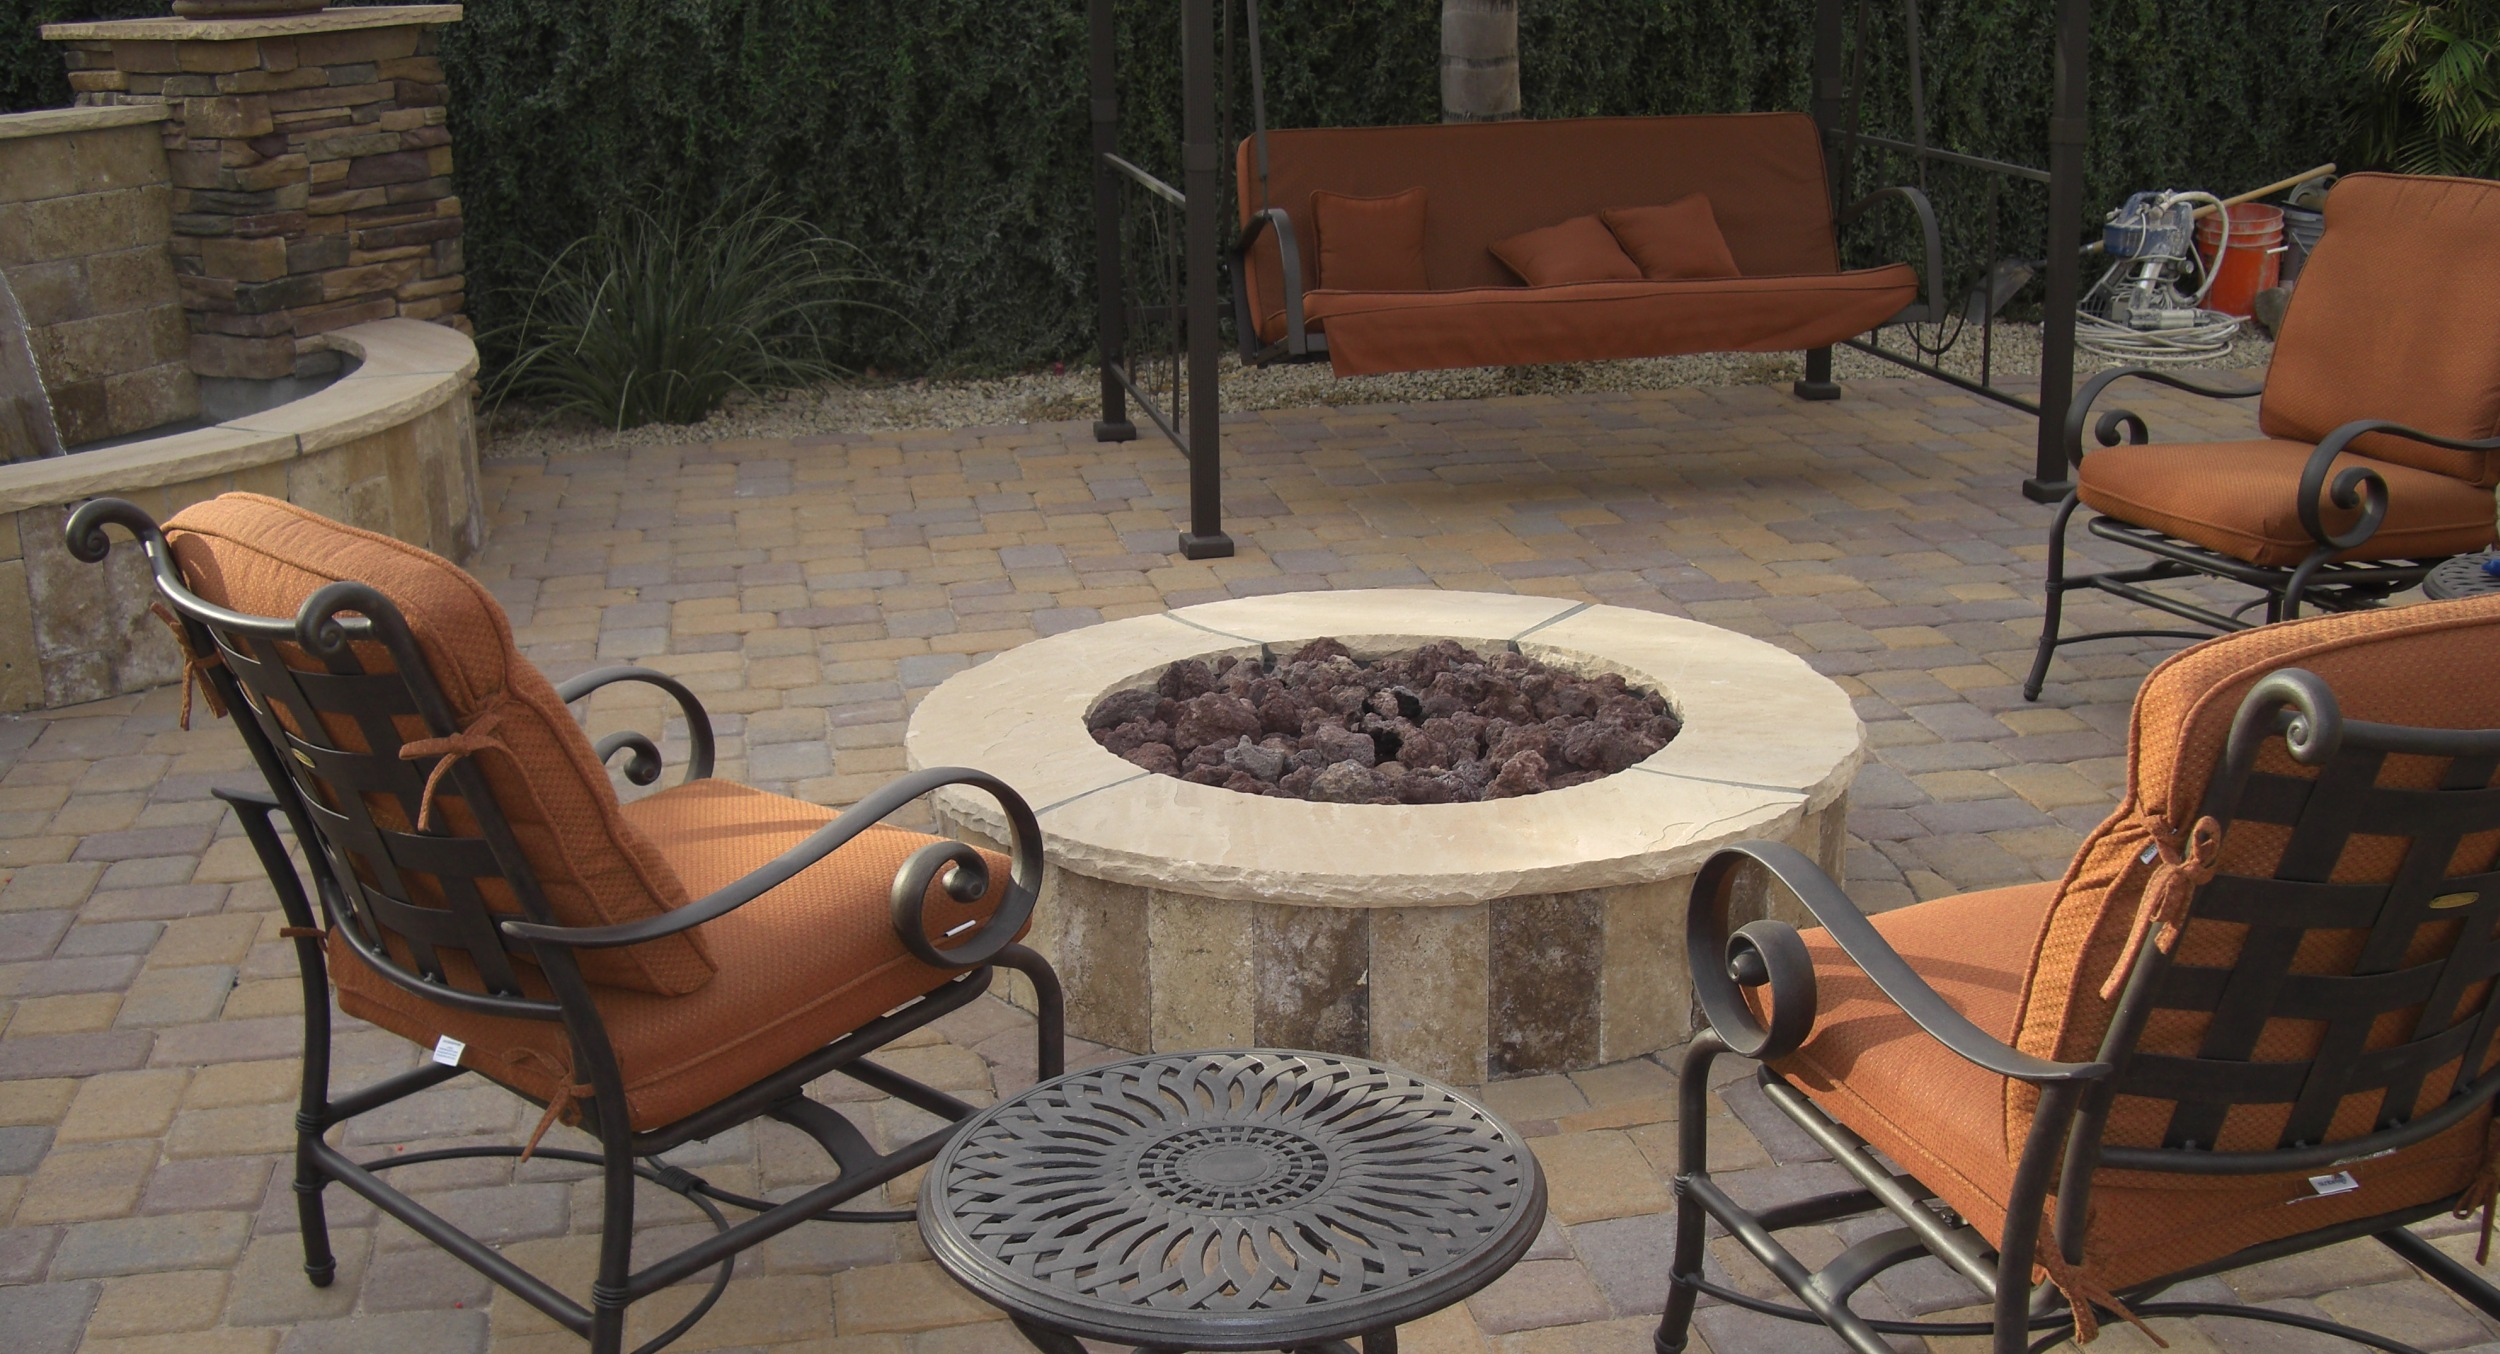 Even small patio designs give you room for outdoor fire pits. Glendale clients now enjoy this lovely stone fire pit and matching waterfall fountain on their new paver patio.